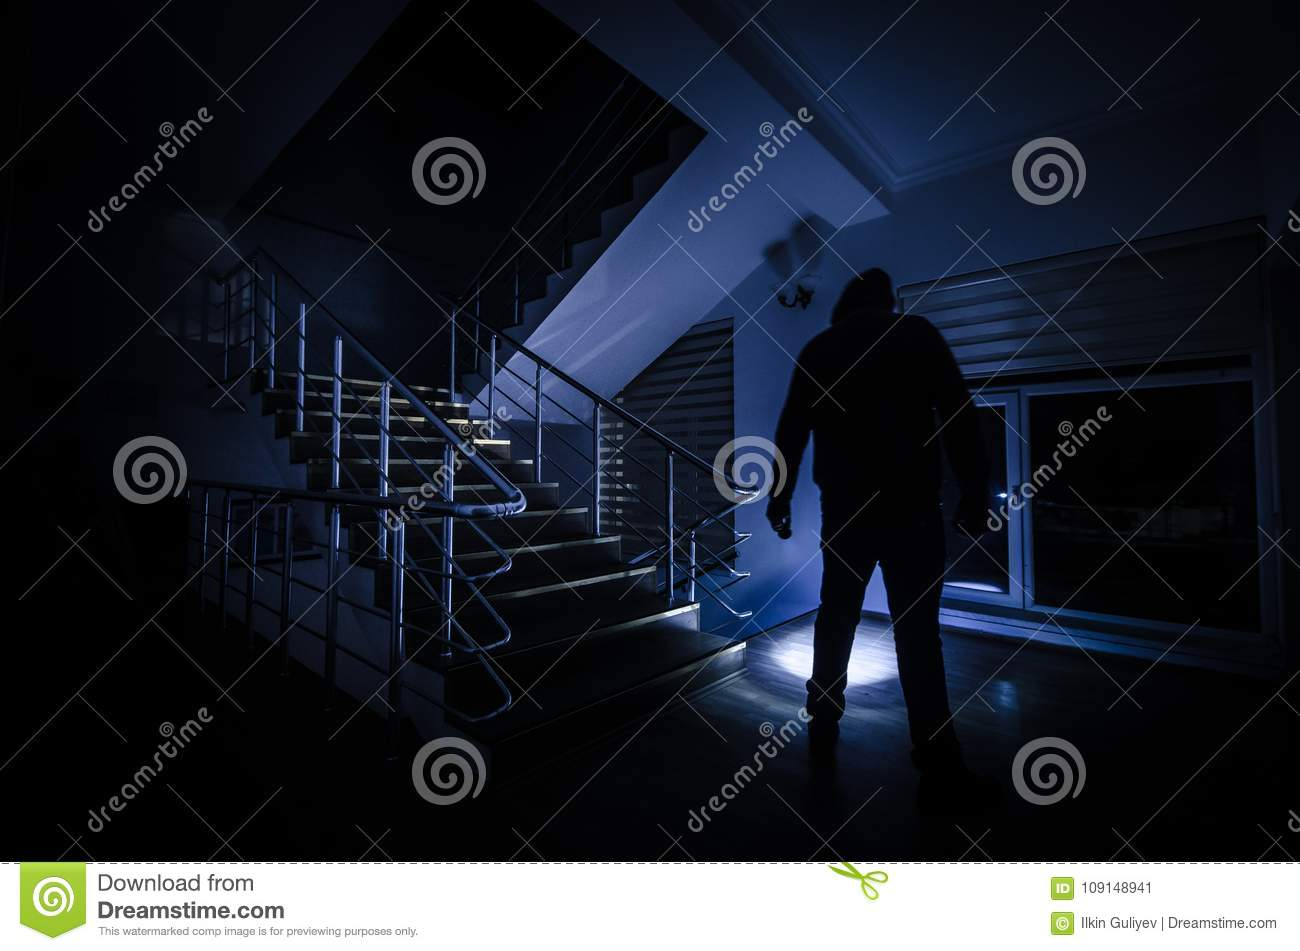 Ghost in Haunted House at stairs, Mysterious silhouette of ghost man with light at stairs, Horror scene of scary ghost spooky llig